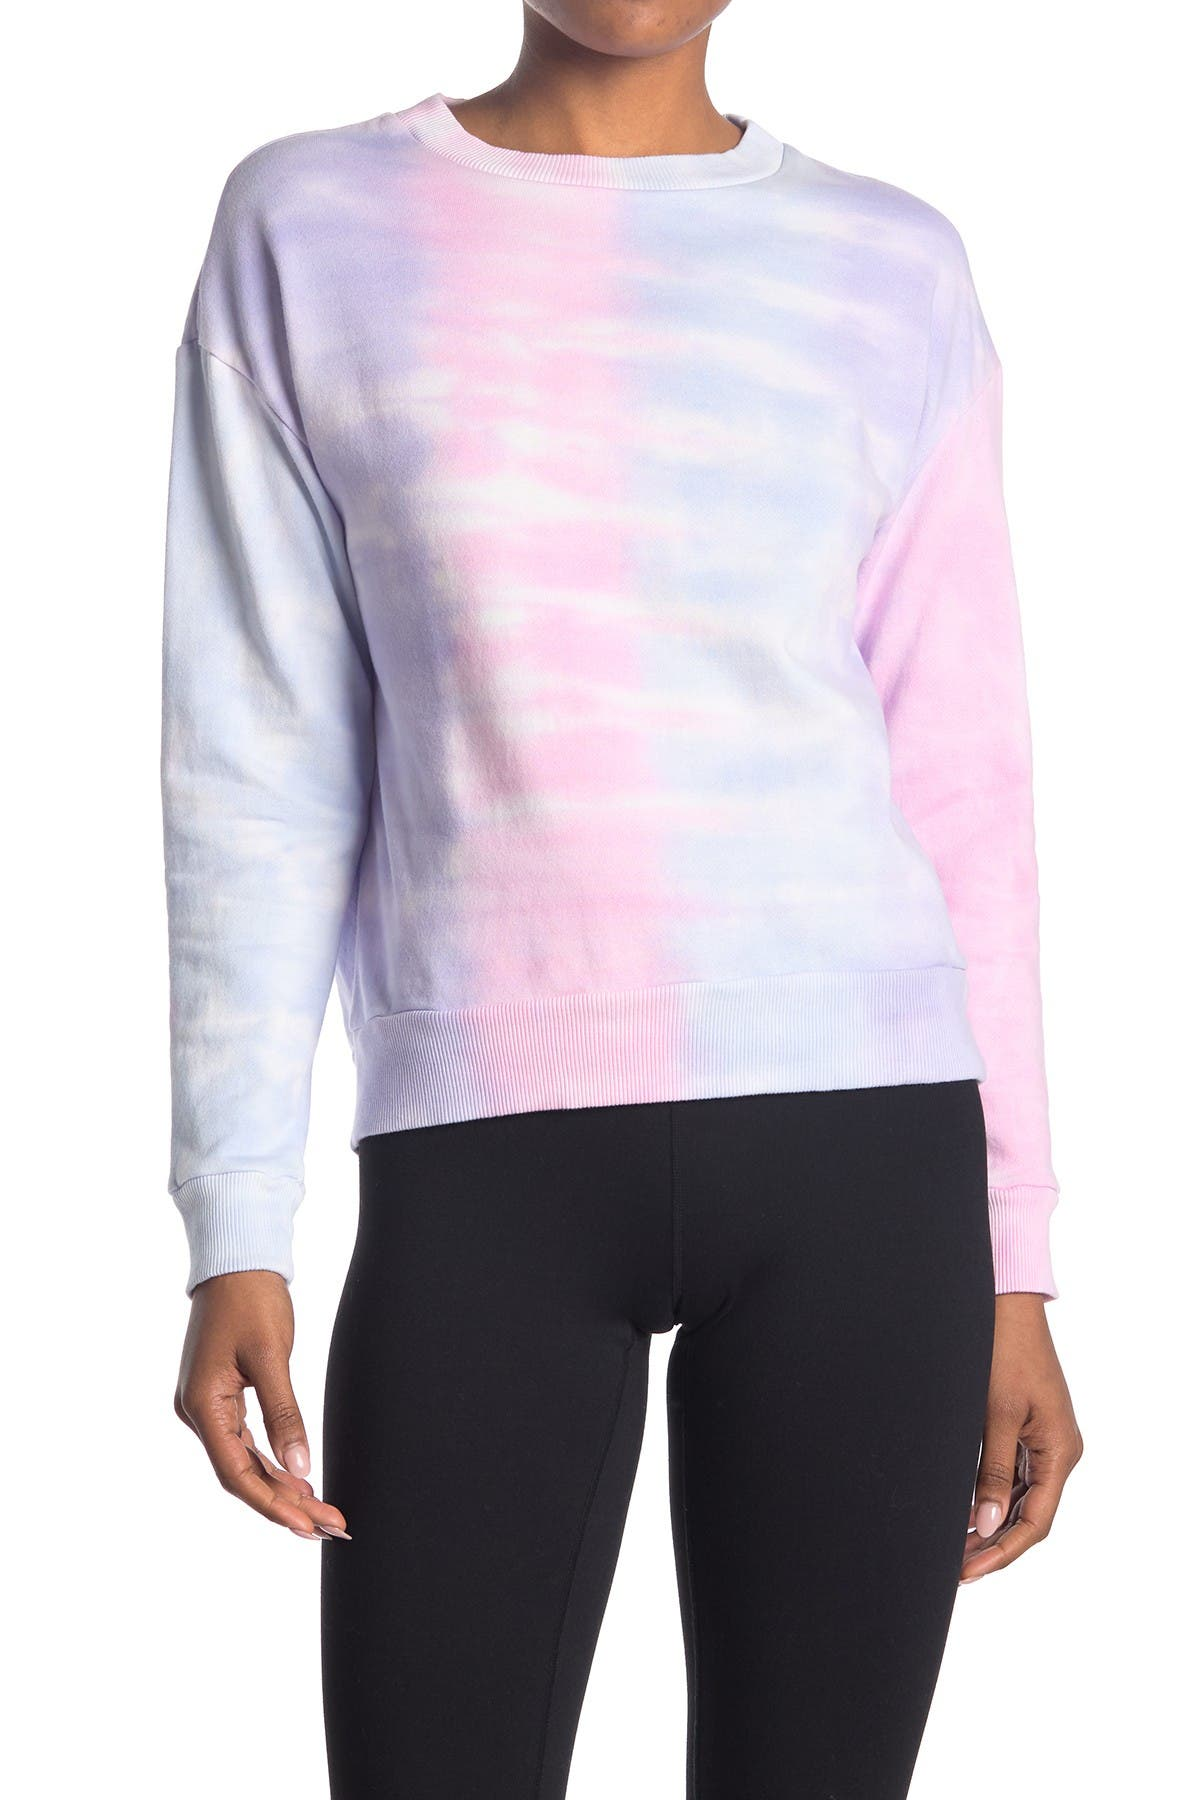 Image of 90 Degree By Reflex Brushed Tie Dye Sweatshirt